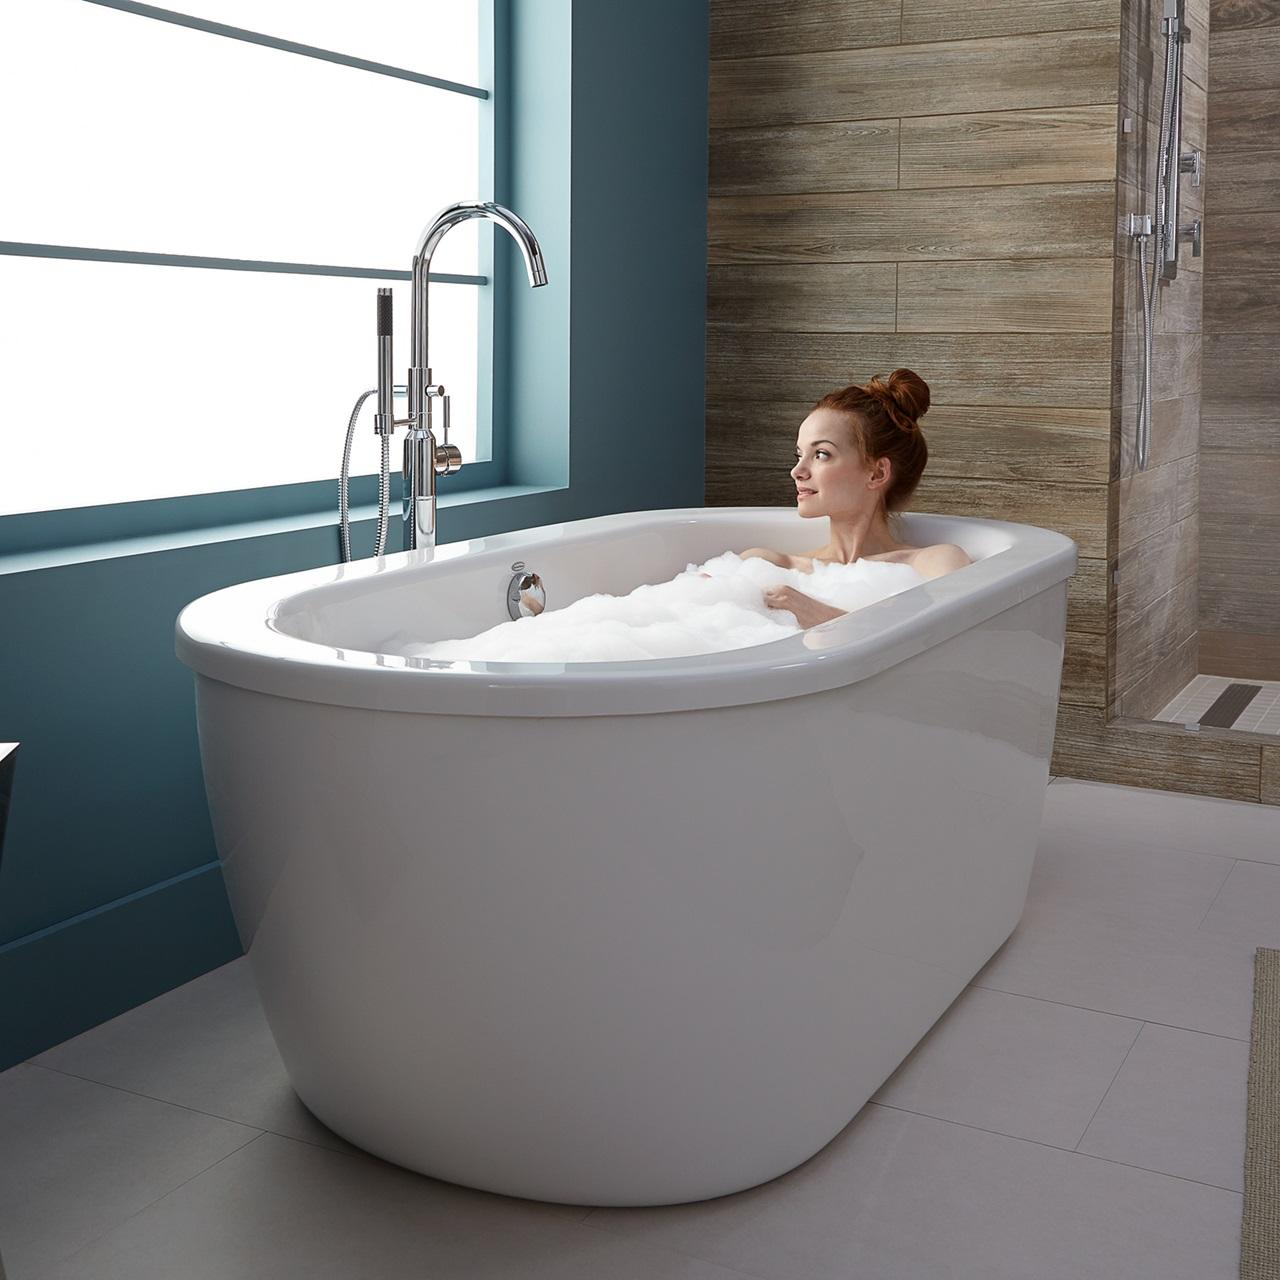 jacuzzi faucet no with drain com pure bathtub reversible whirlpool bravo white tub center freestanding air straight blower and